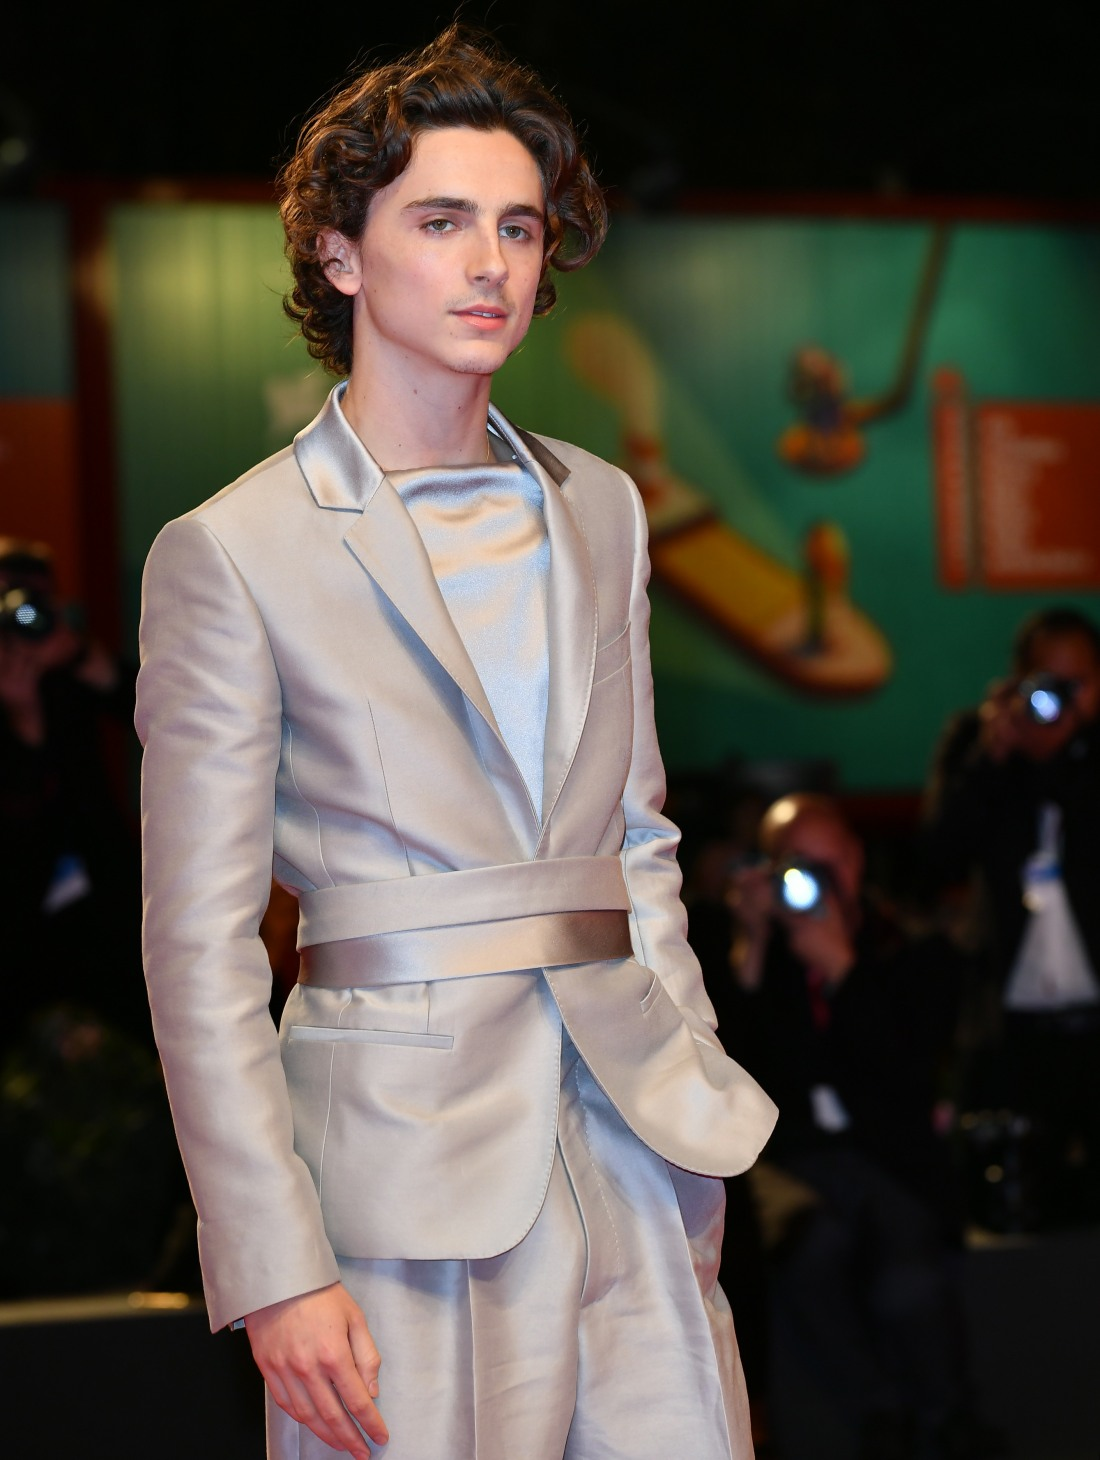 Timothee Chalamet during the red carpet of film ' The King ' at the 67th Venice Film Festival, Venice, ITALY-02-09-2019